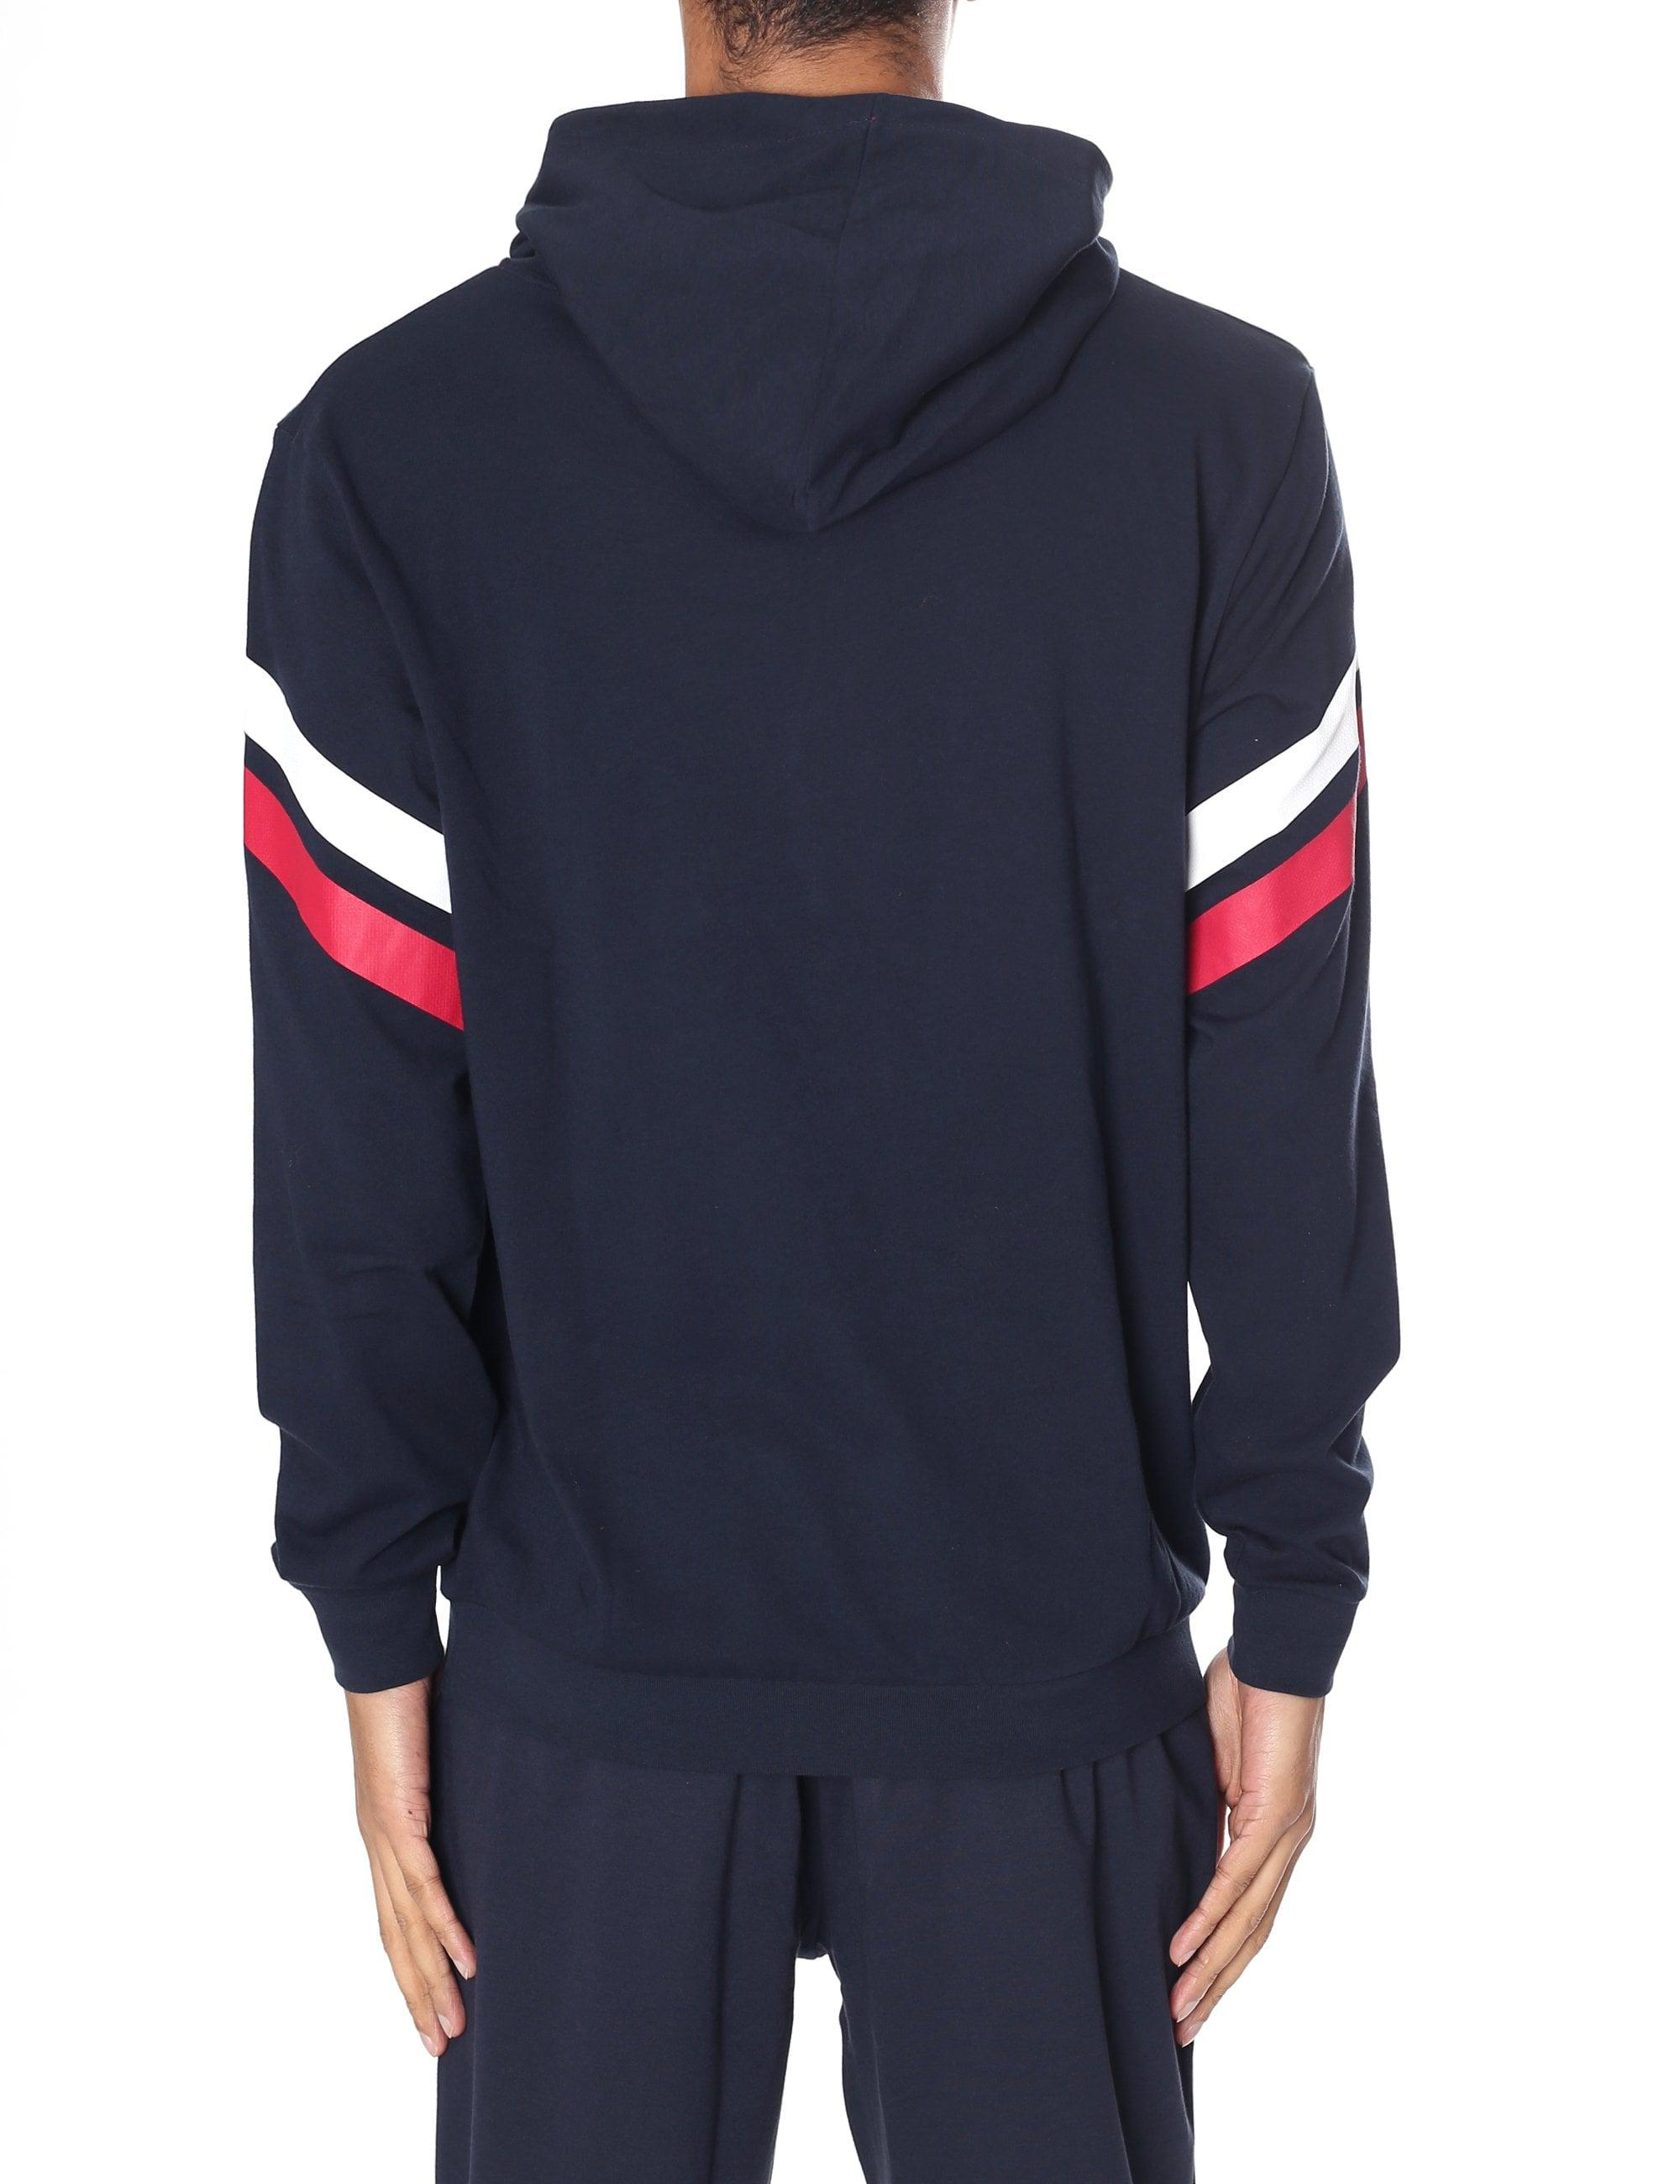 dfb726ae7 ... Hugo Boss - Blue Authentic Popover Hoodie for Men - Lyst. Visit  Diffusion. Tap to visit site